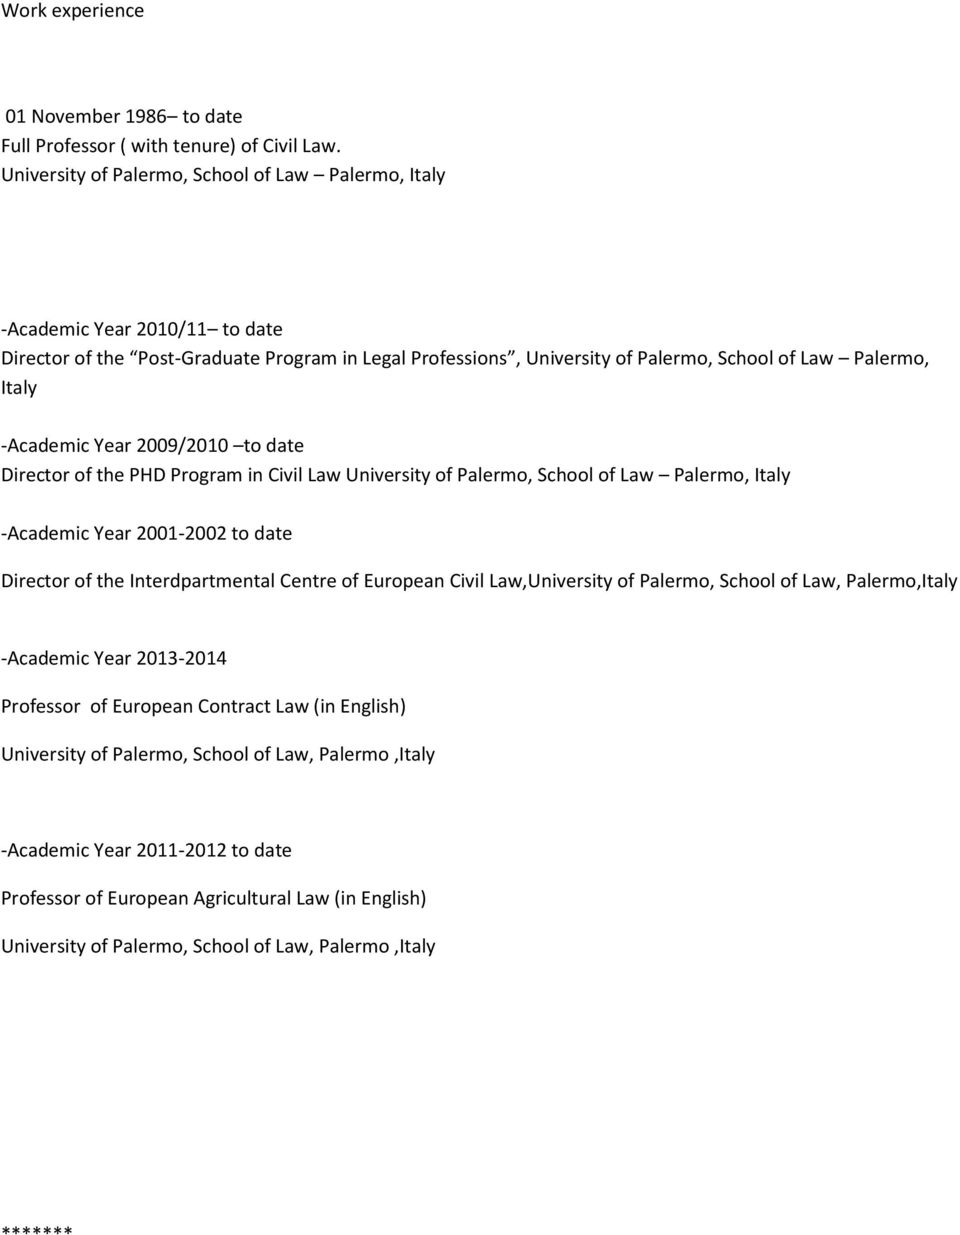 -Academic Year 2009/2010 to date Director of the PHD Program in Civil Law University of Palermo, School of Law Palermo, Italy -Academic Year 2001-2002 to date Director of the Interdpartmental Centre